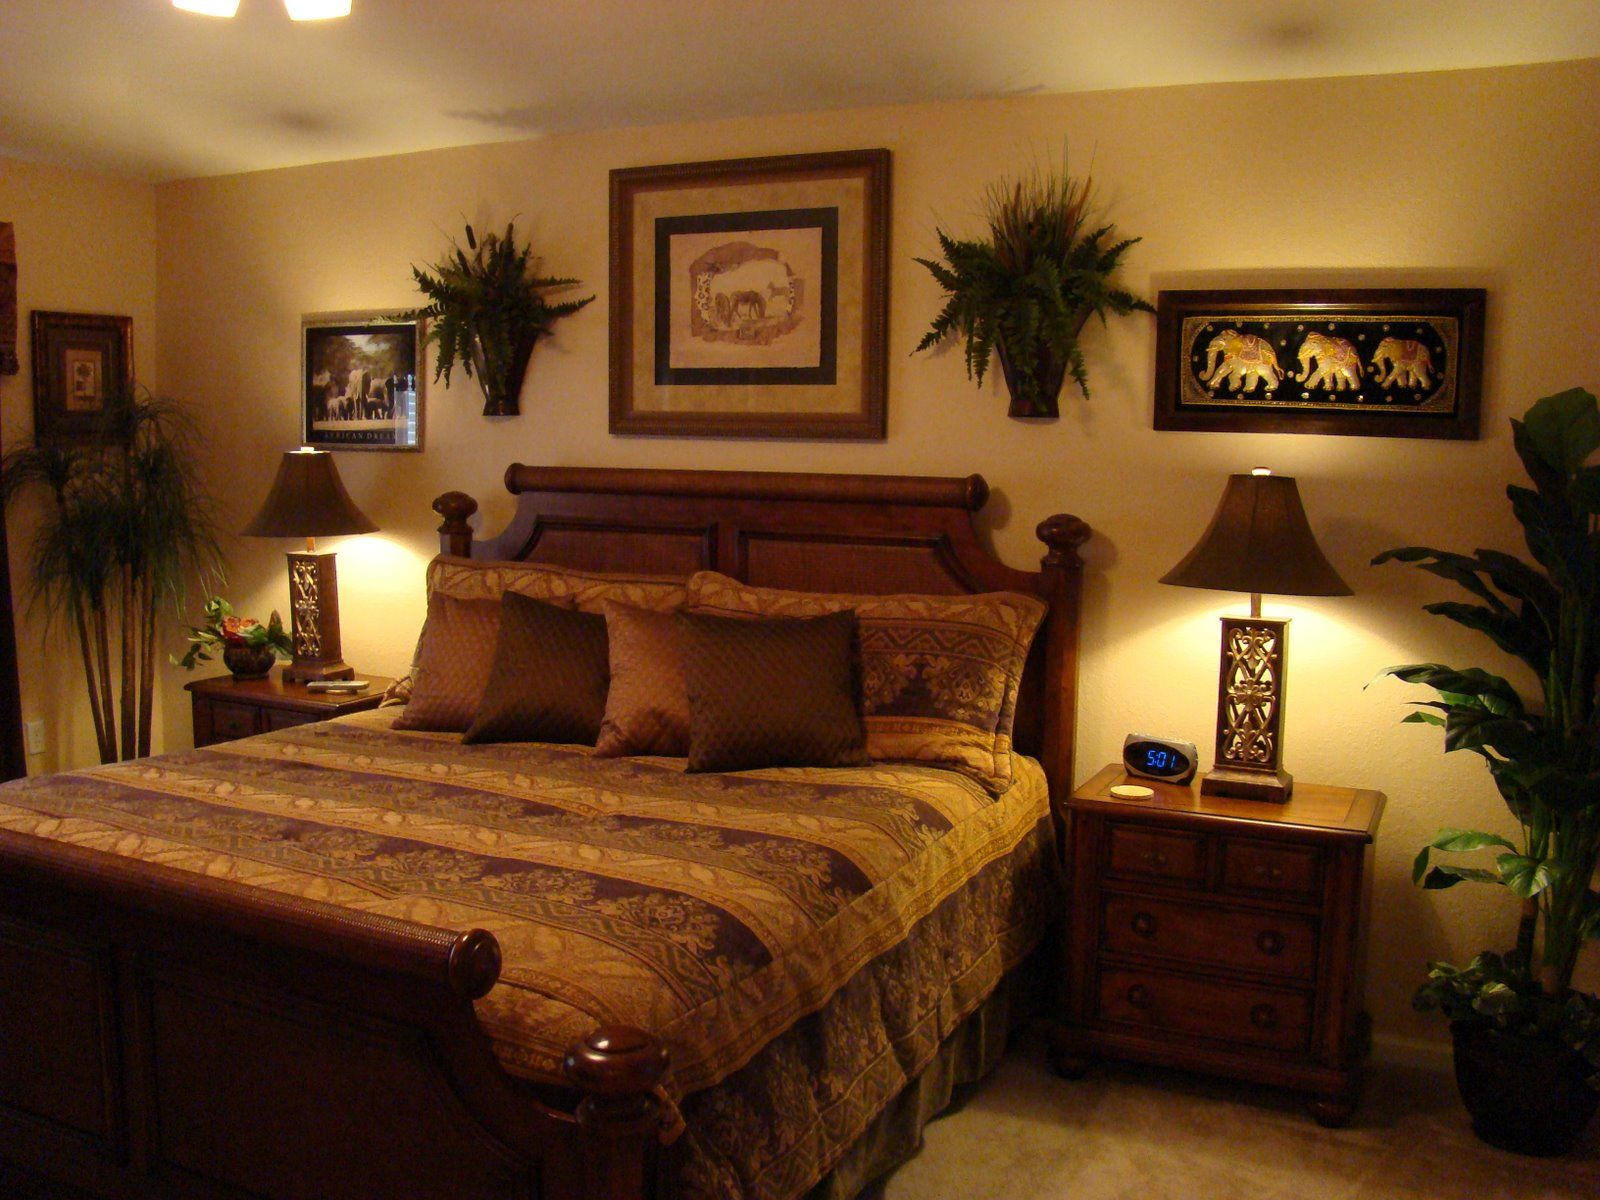 Top ten tourist attractions in kenya master bedroom for New house bedroom ideas